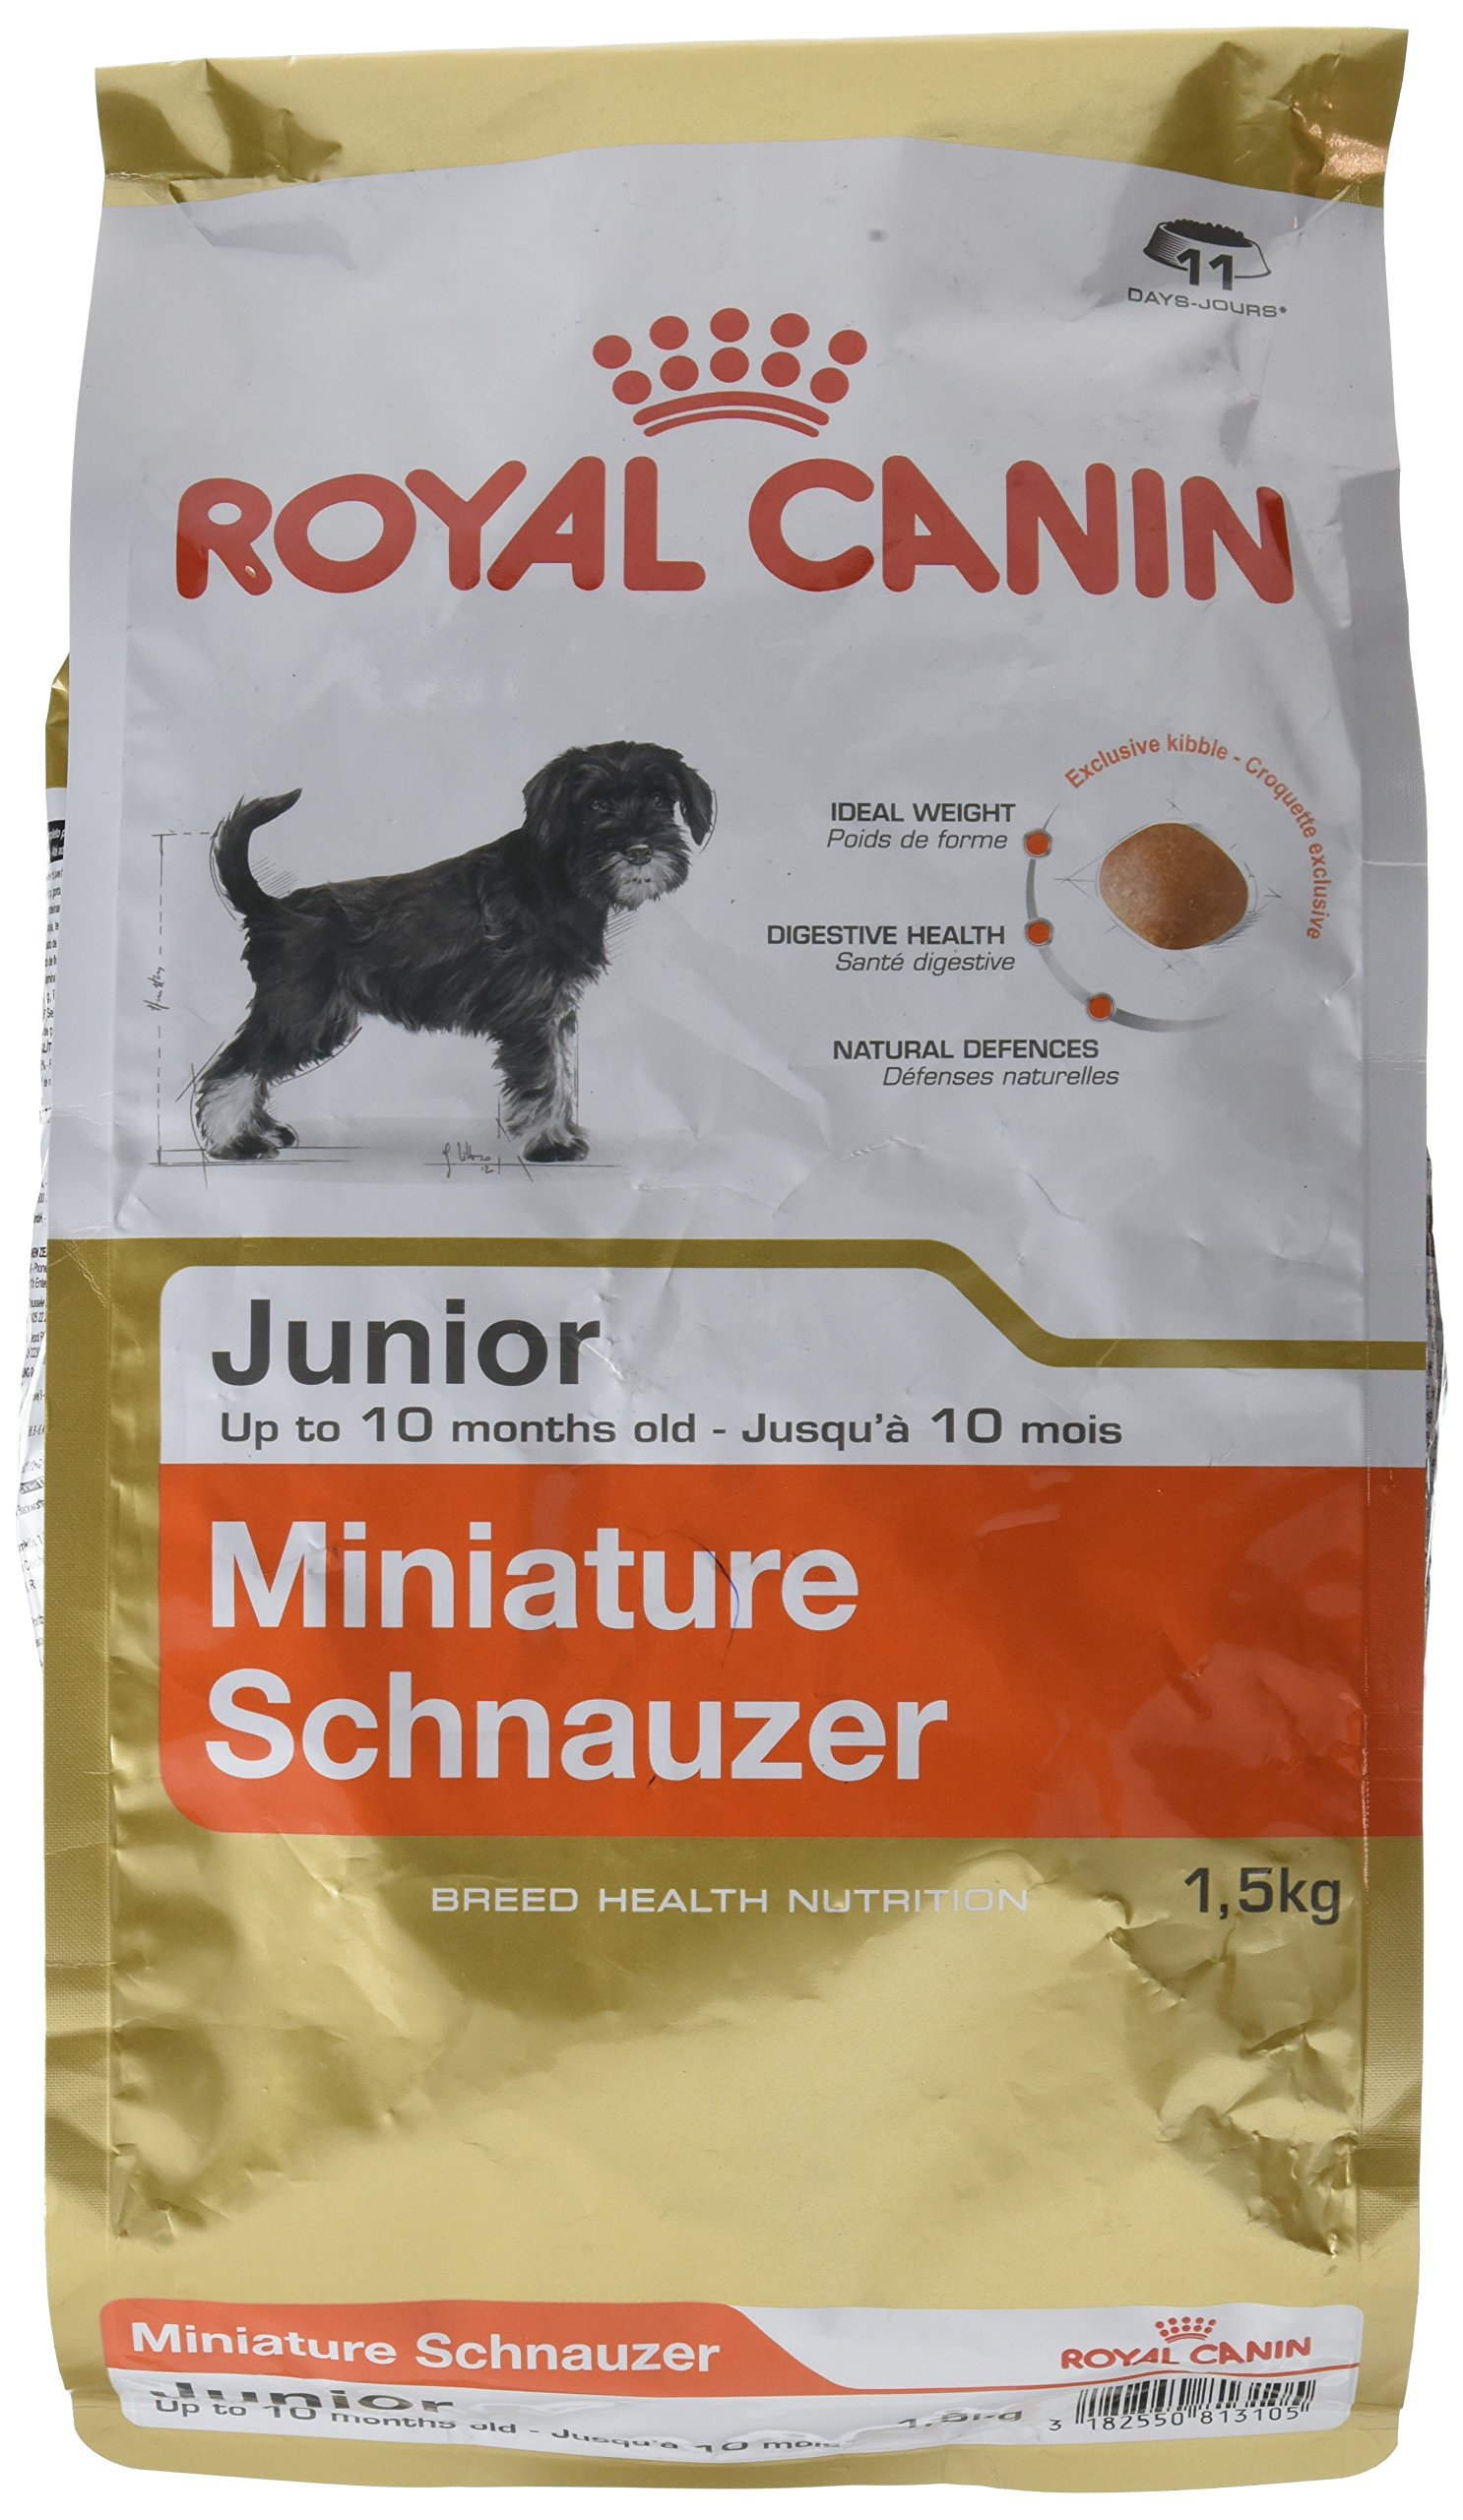 Royal Canin Dog Food Mini Schnauzer Junior Complete 1.5KG